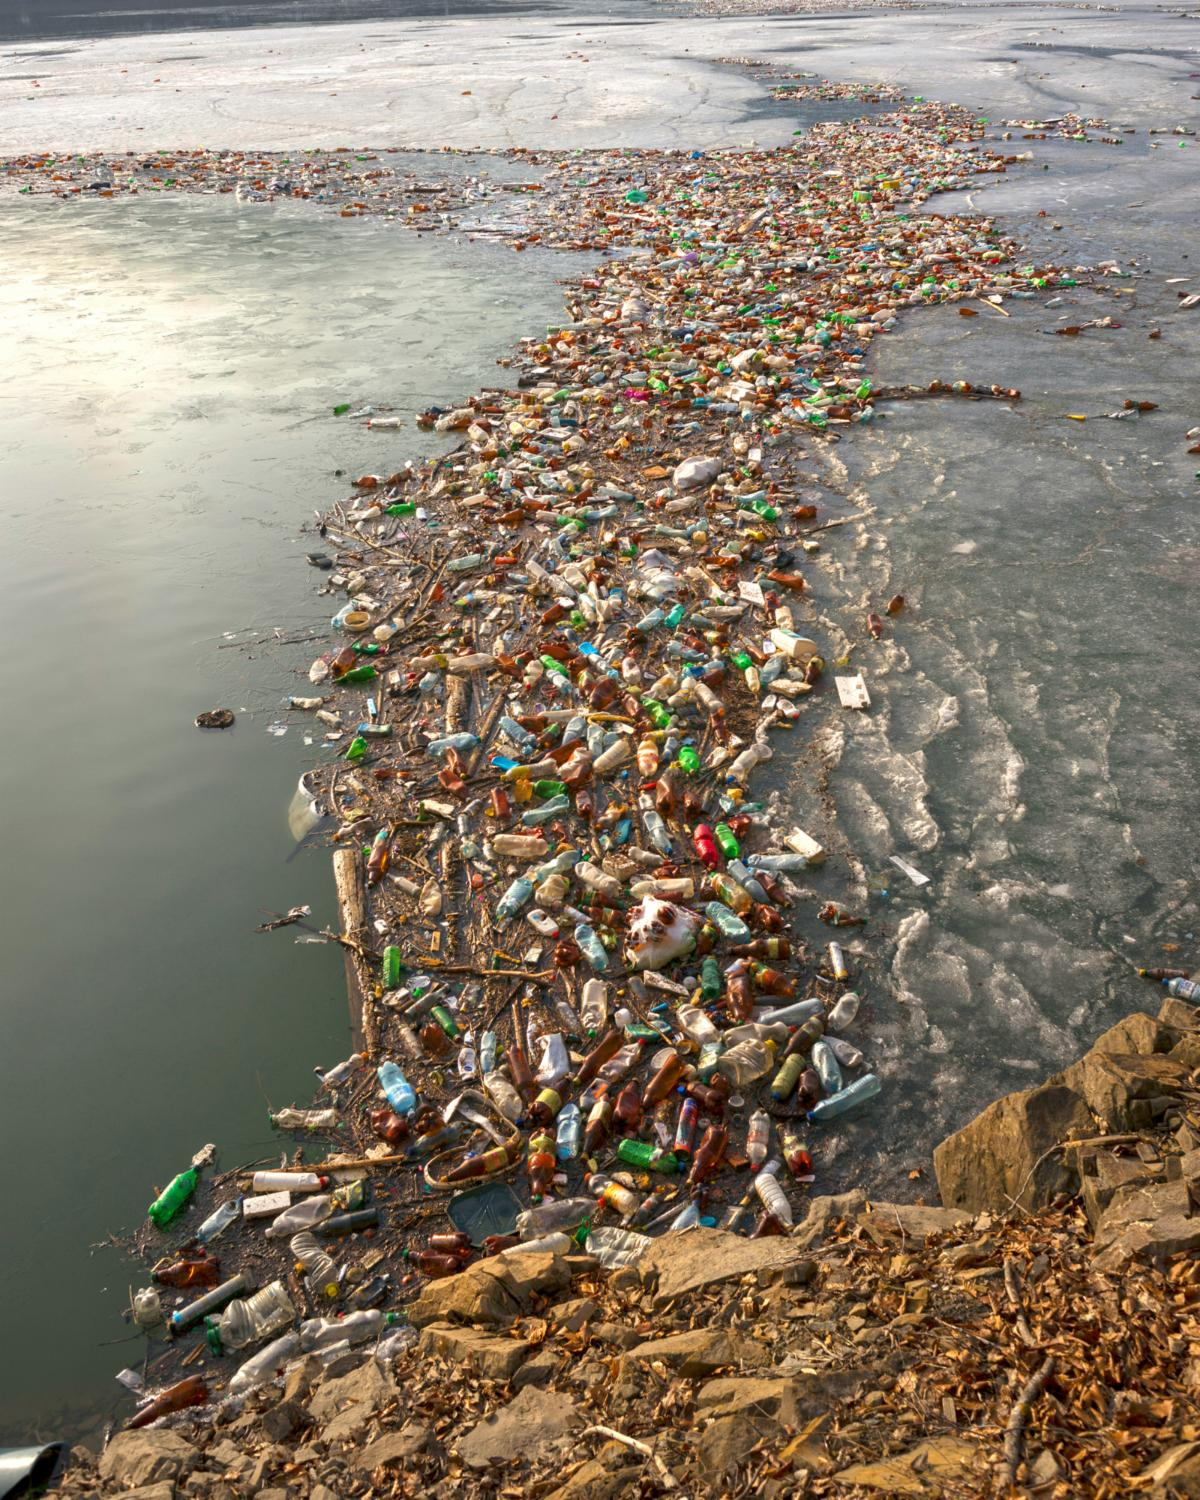 Plastic pollution along the coast